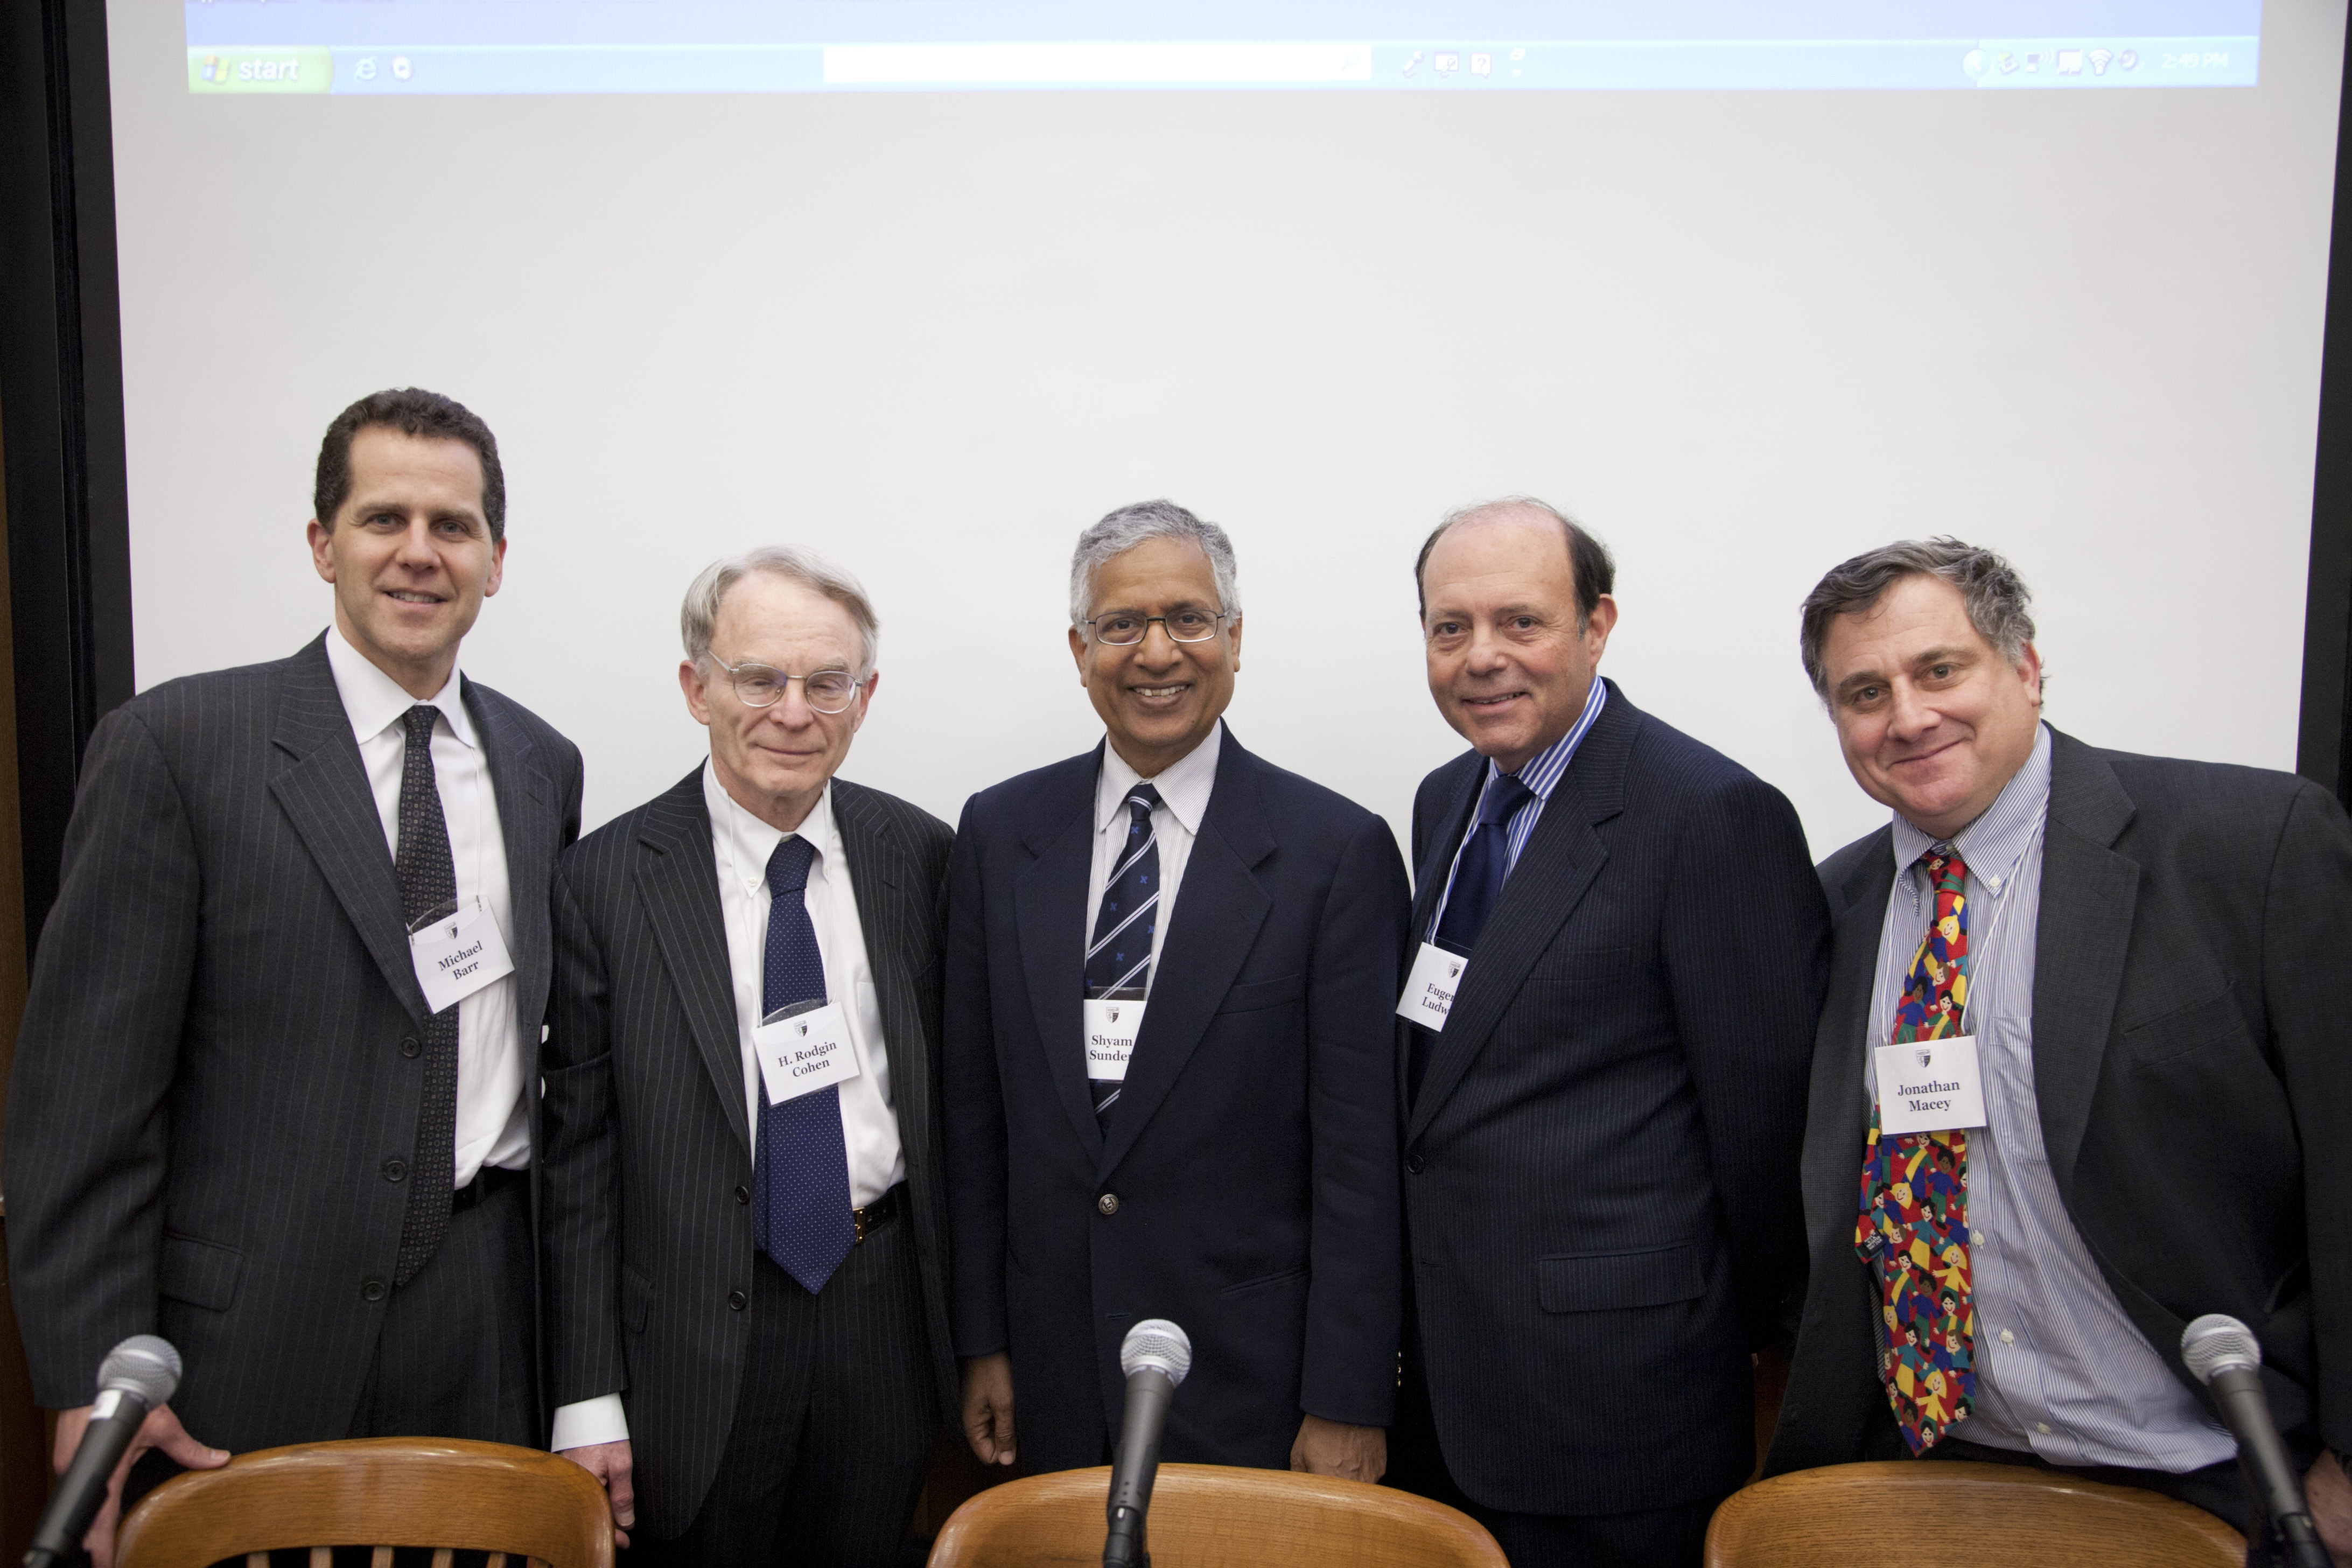 Michigan Law Prof. Michael Barr '92, H. Rodgin Cohen, Yale SOM Prof. Shyam Sunder, Eugene Ludwig '73, and YLS Prof. Jonathan Macey '82